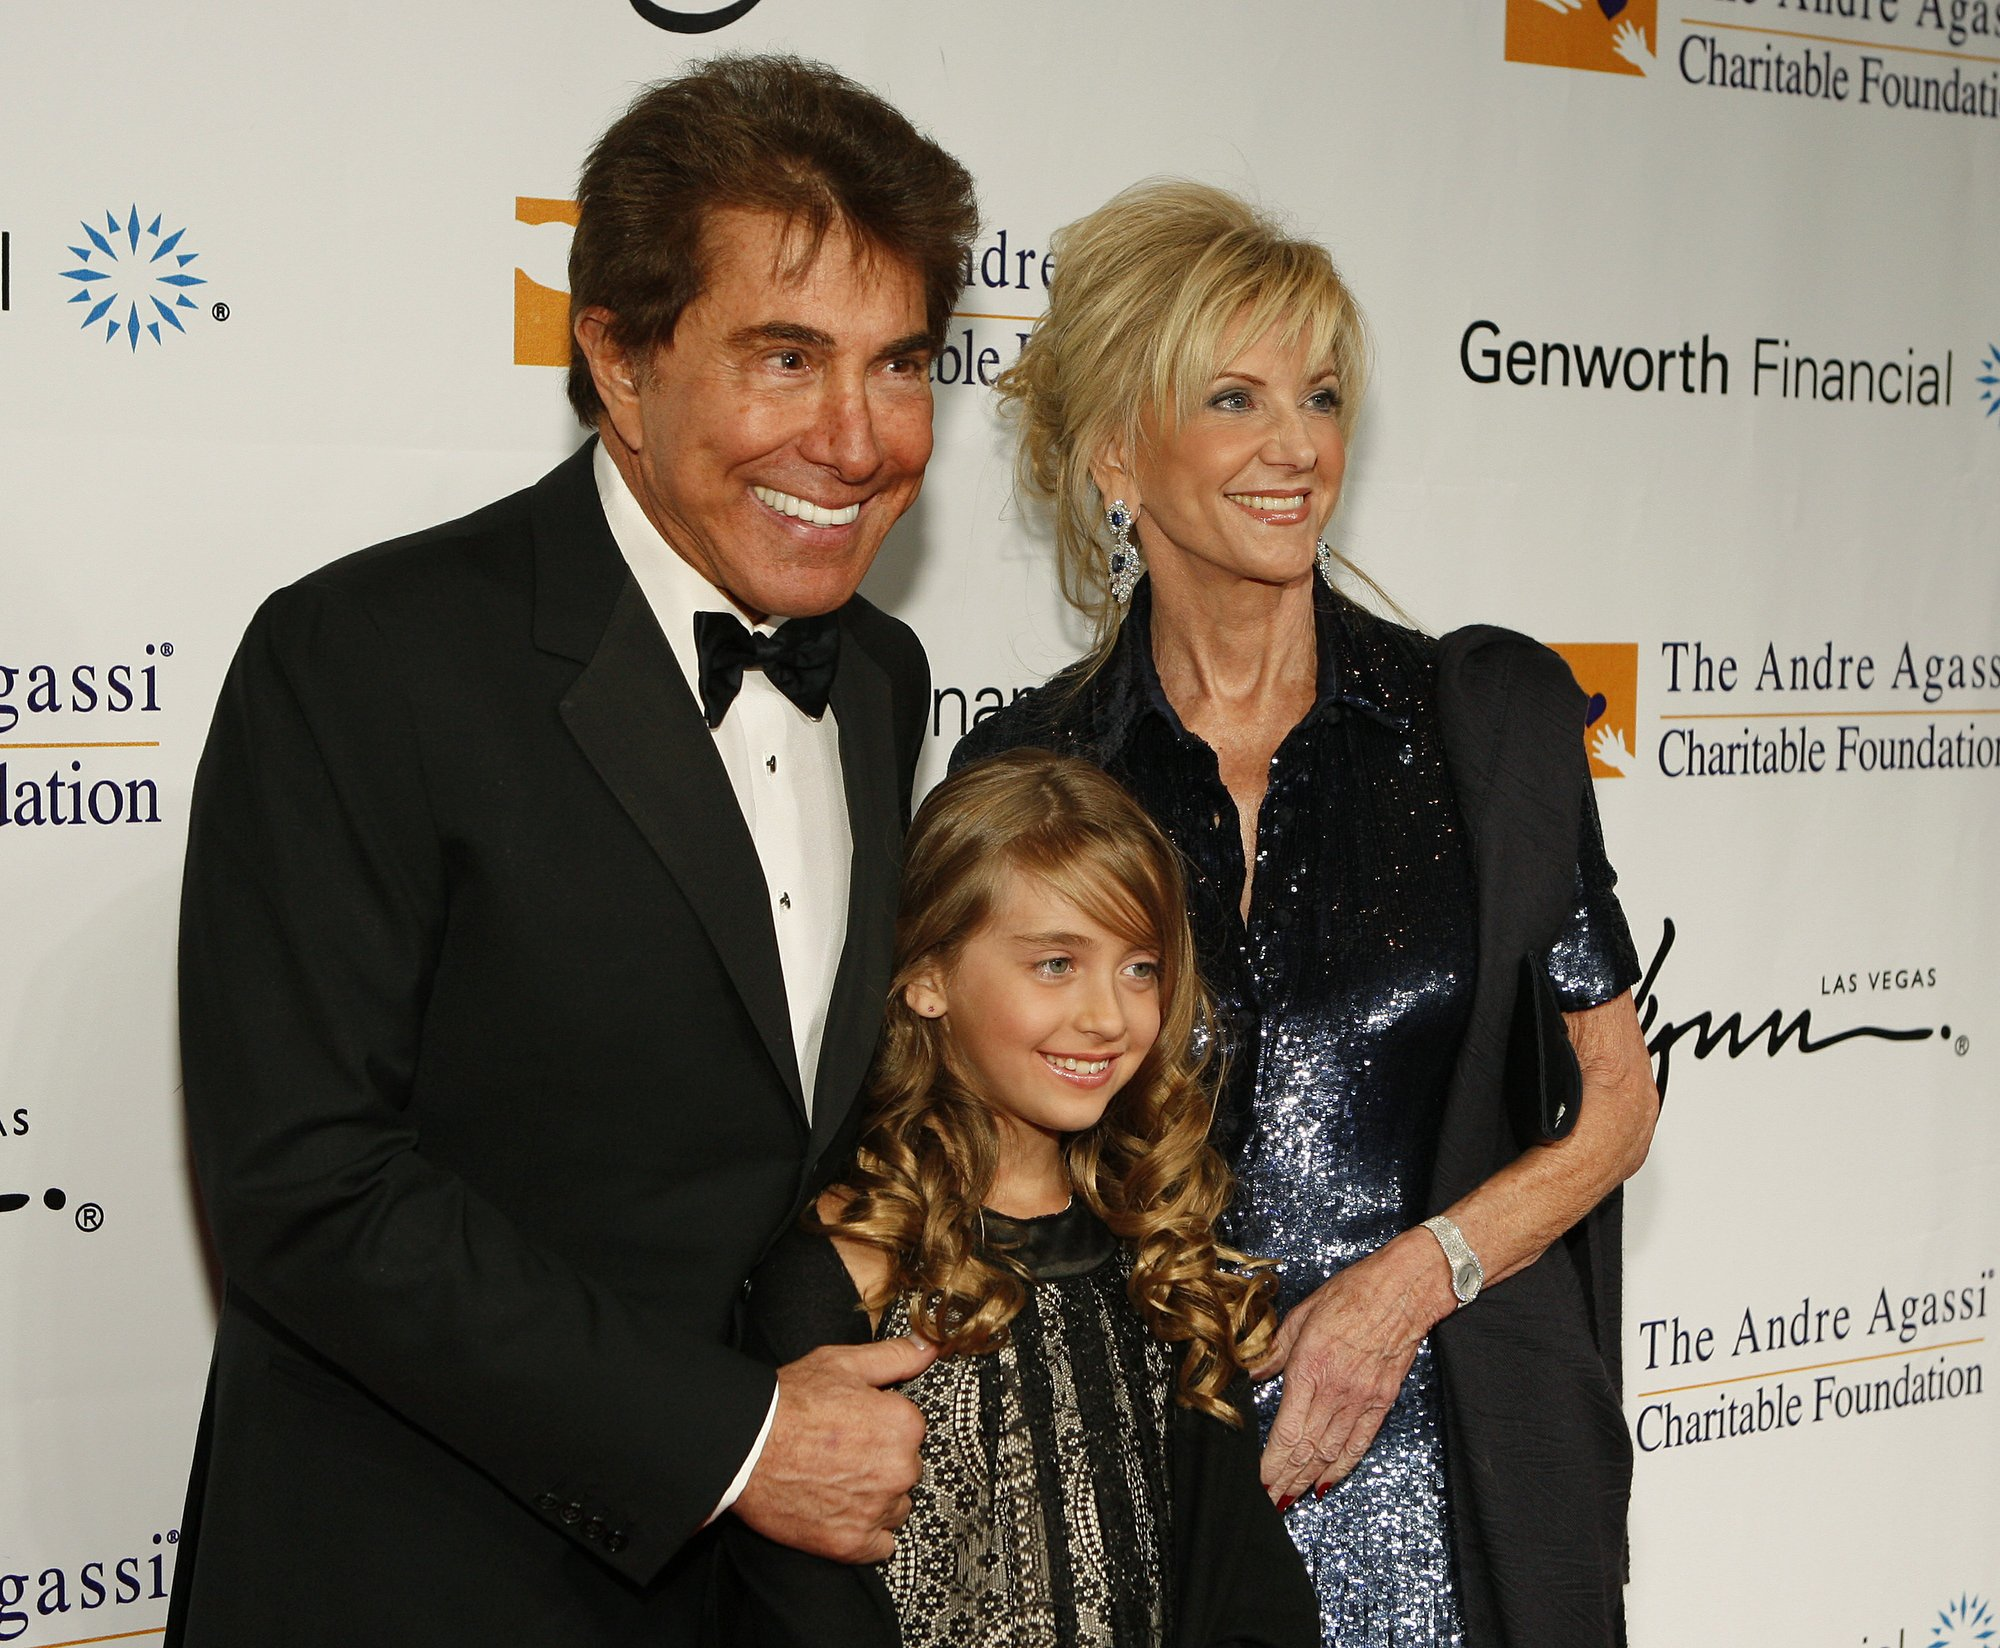 Stockholders Agreement Involving Steve Wynn Ex Wife Invalid